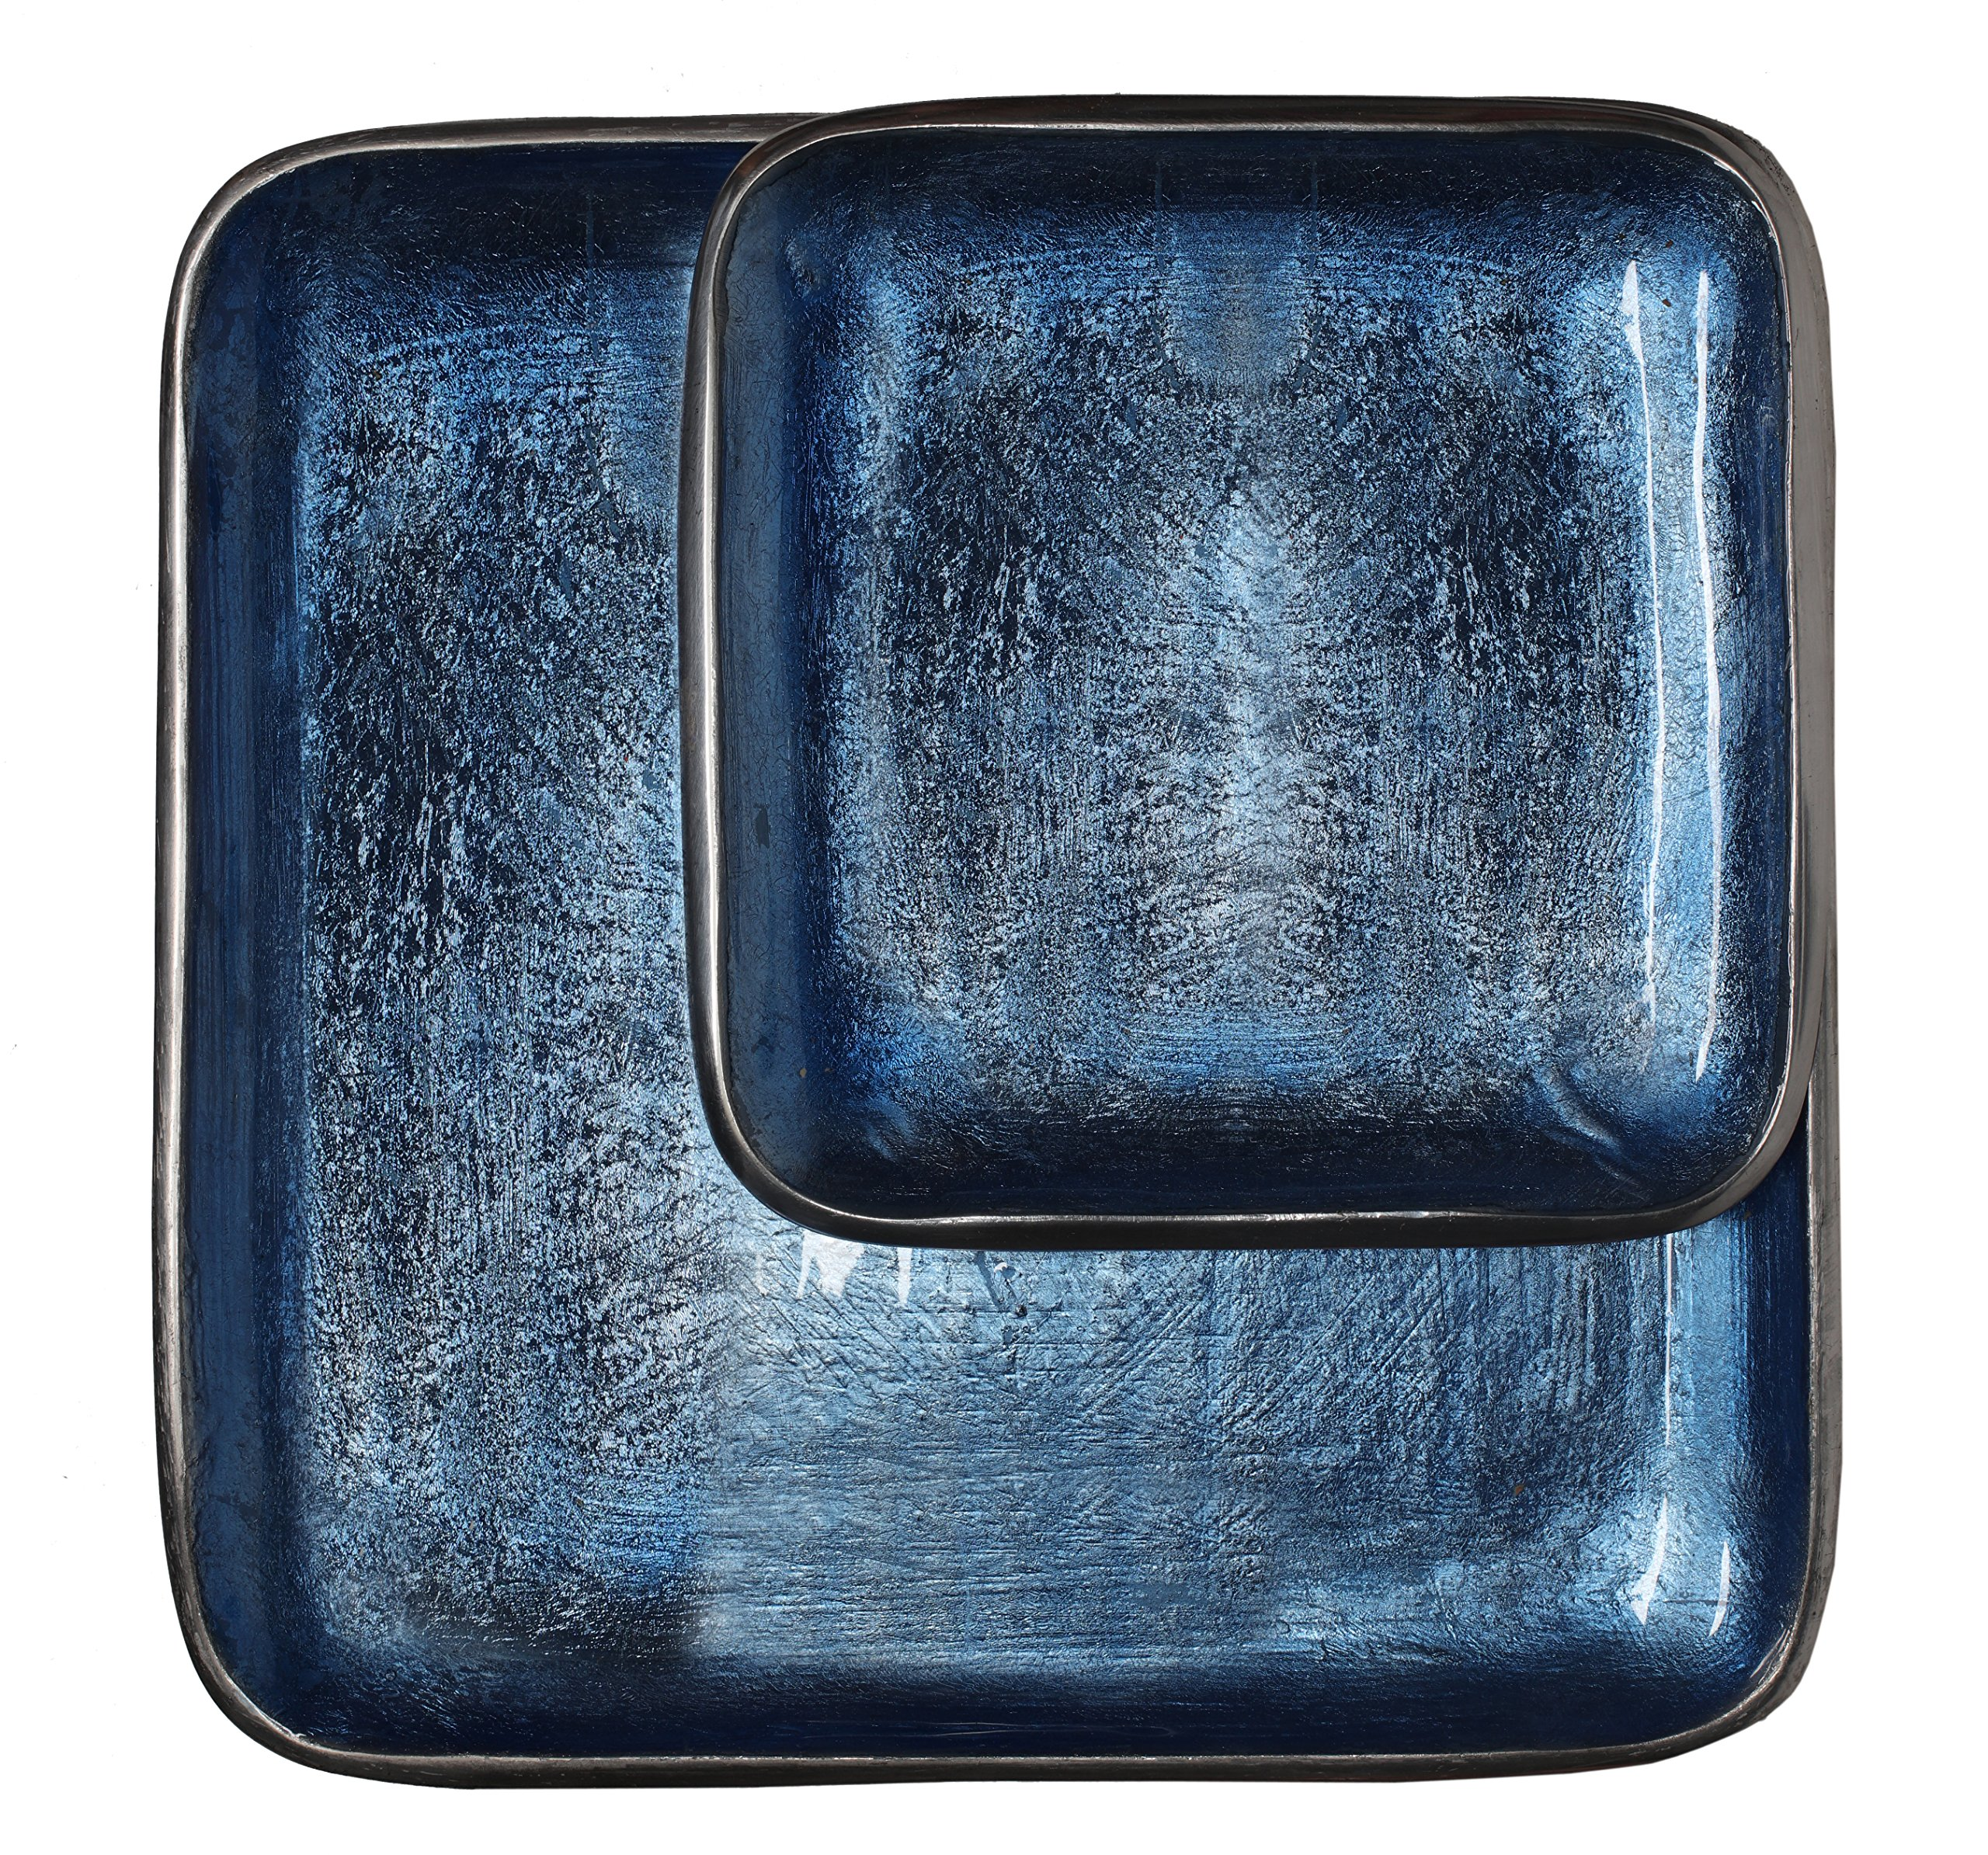 Melange Home Decor Square Tray Collection Set of 2 Square Trays- 8.25'' and 12.25'', Color - Sky Blue